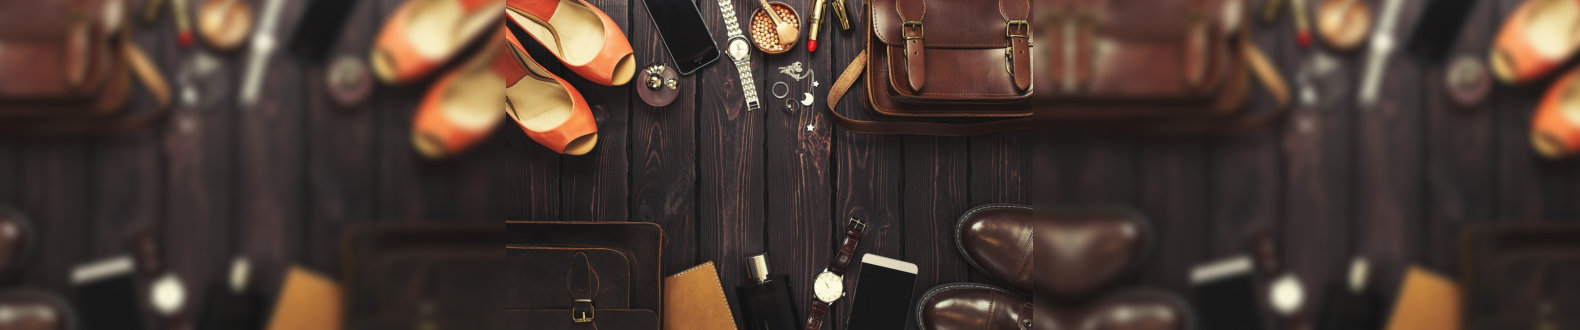 Top view, fashionable male and female personal items with space on a dark wooden background.